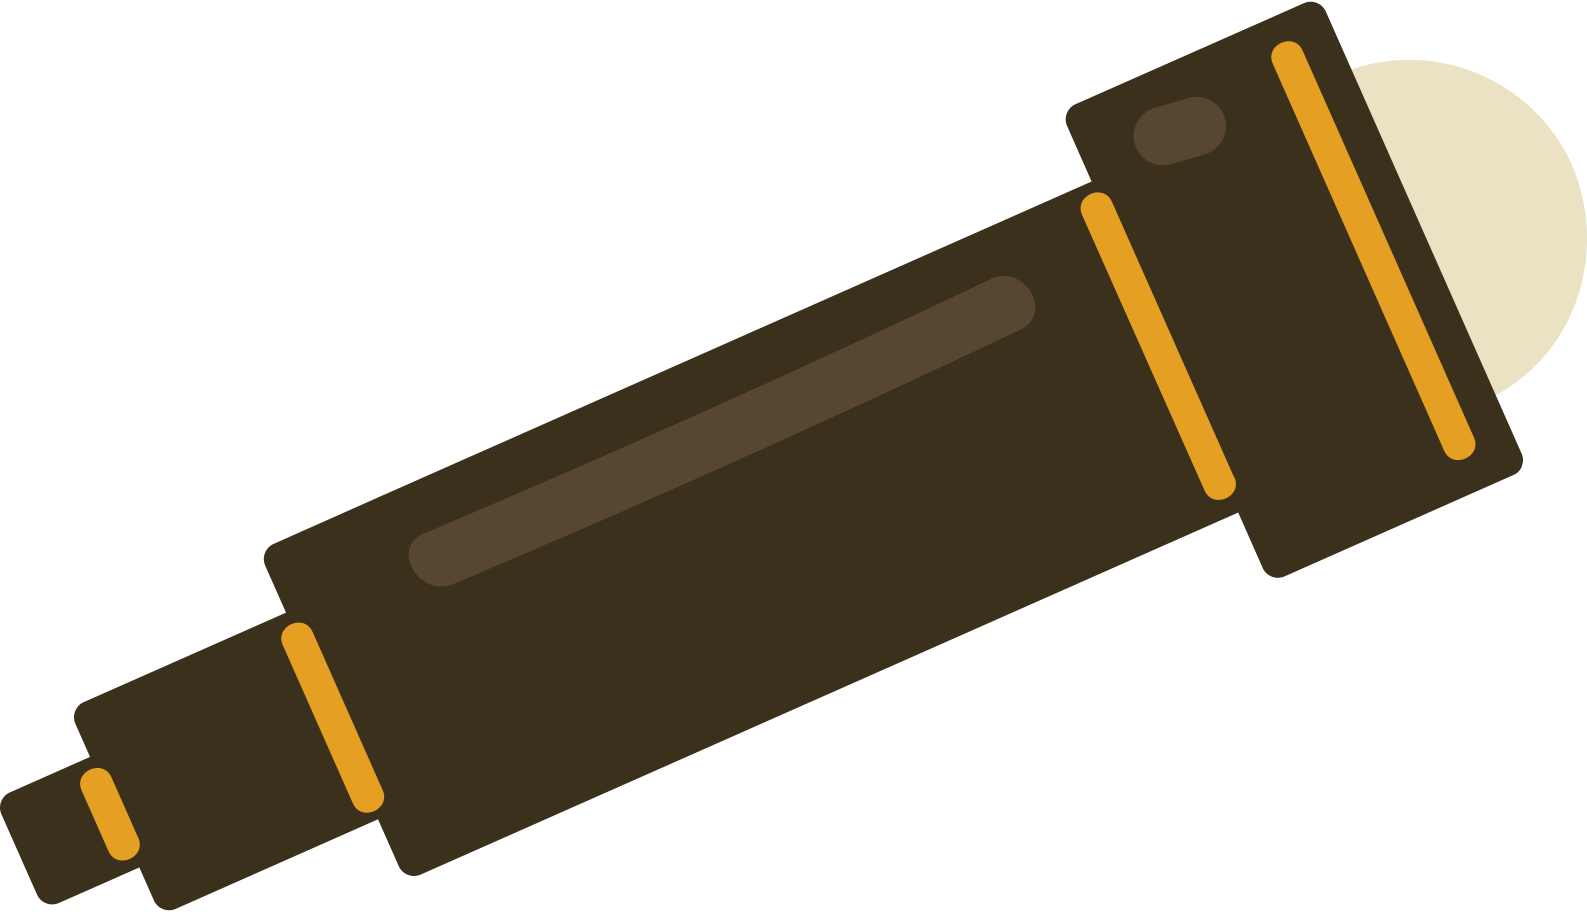 telescope Clipart illustration in PNG, SVG